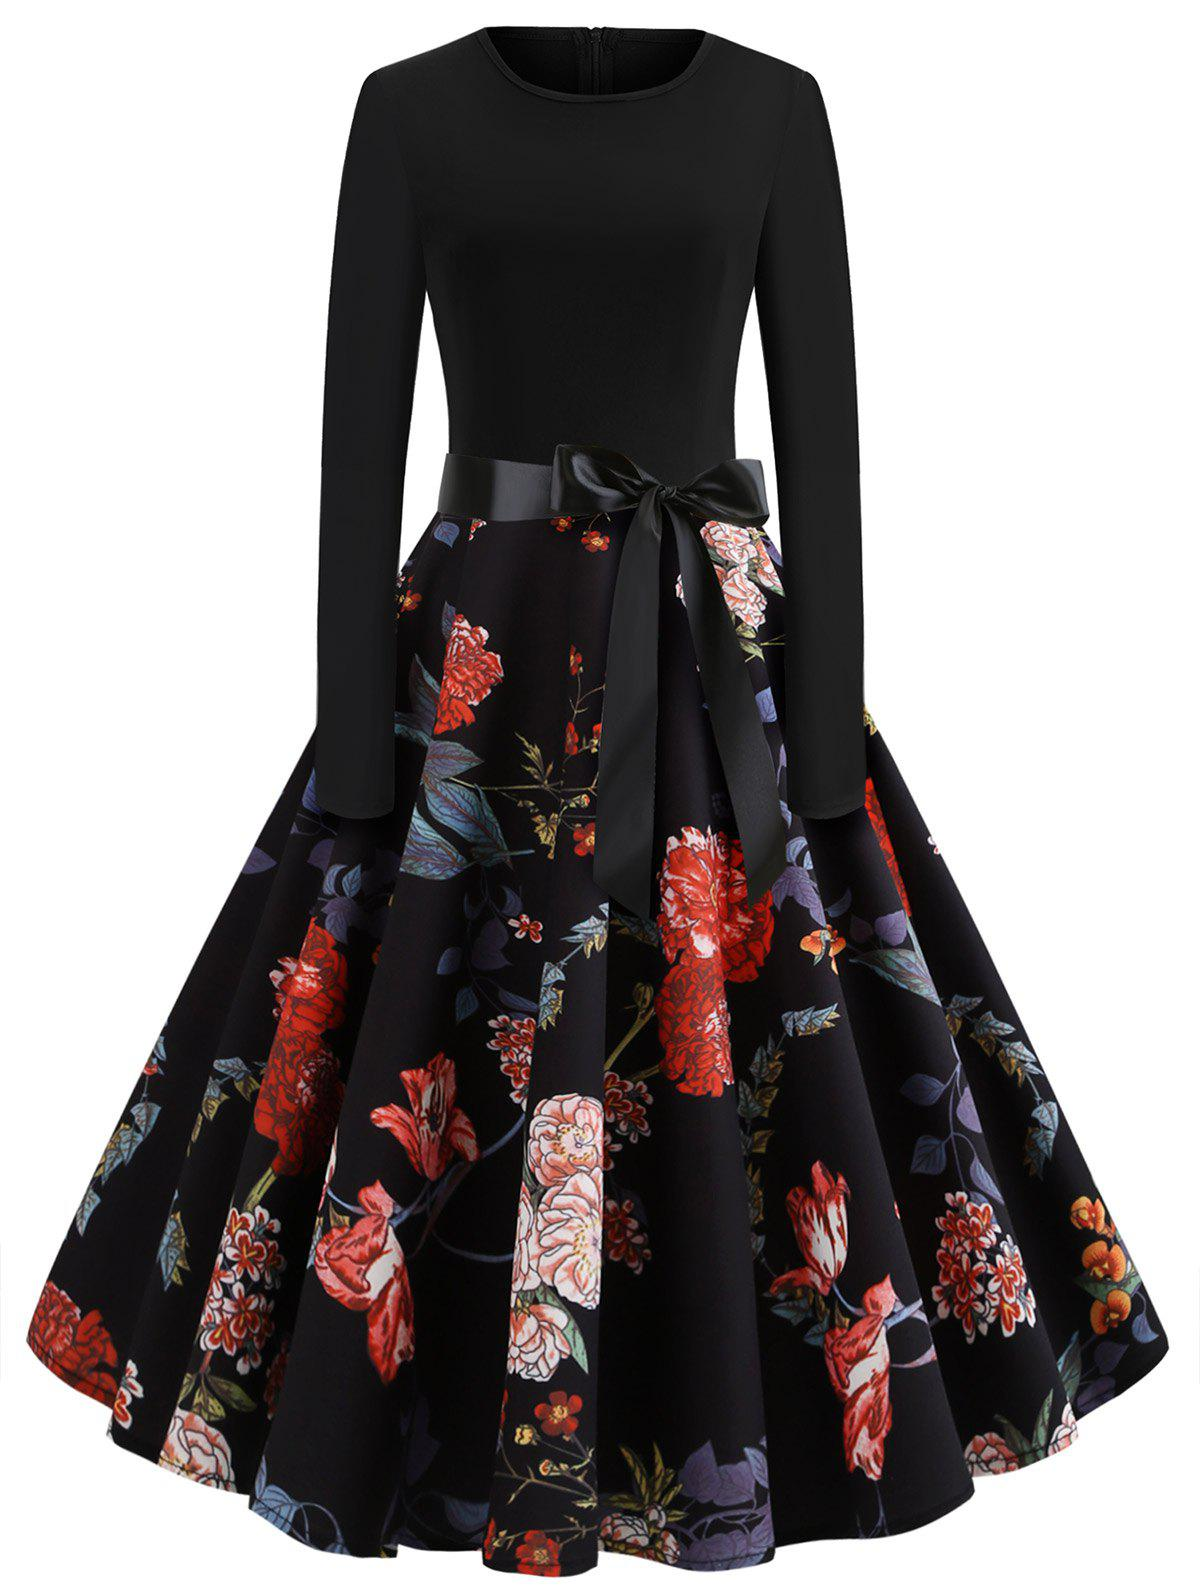 Discount Floral Print Bow Belted Flare Dress